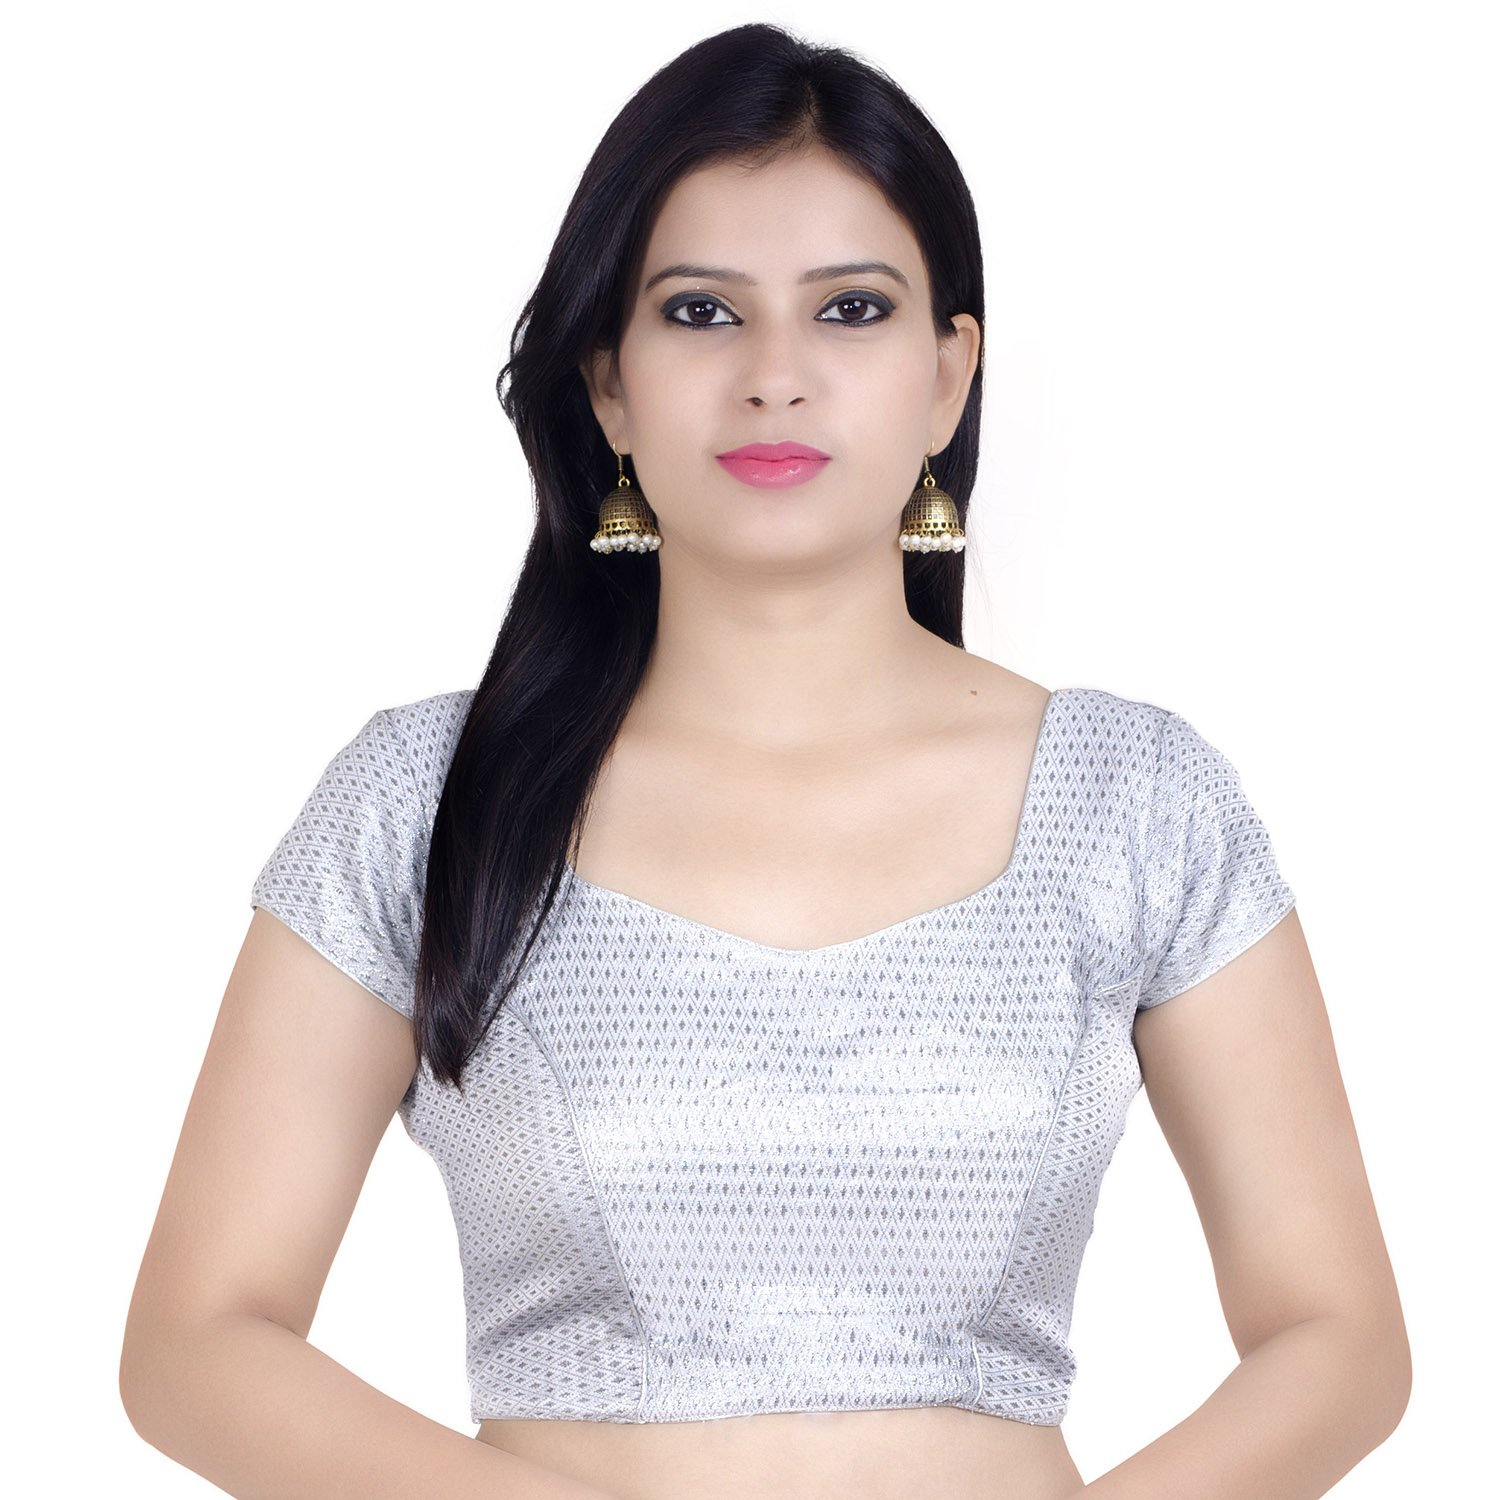 Chandrakala Women's Stretchable Readymade Lycra Silver Indian Ethnic Saree Blouse Crop Top Choli-X-Large (B106SIL5)